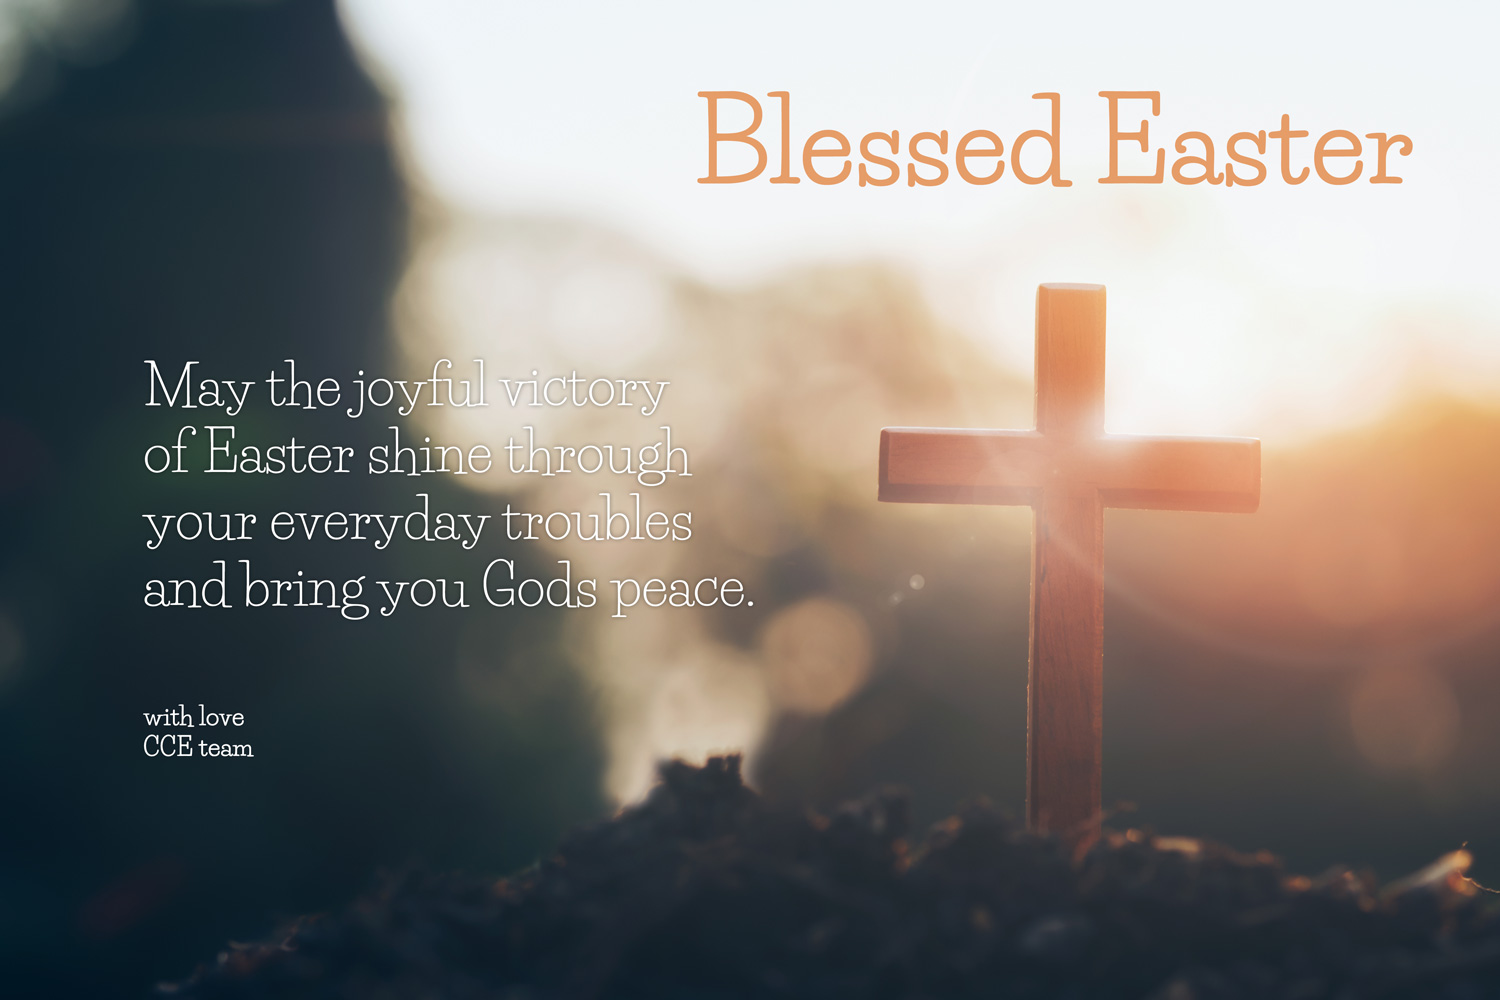 May the joyful victory of Easter shine through your everyday troubles and bring yuo Gods peace